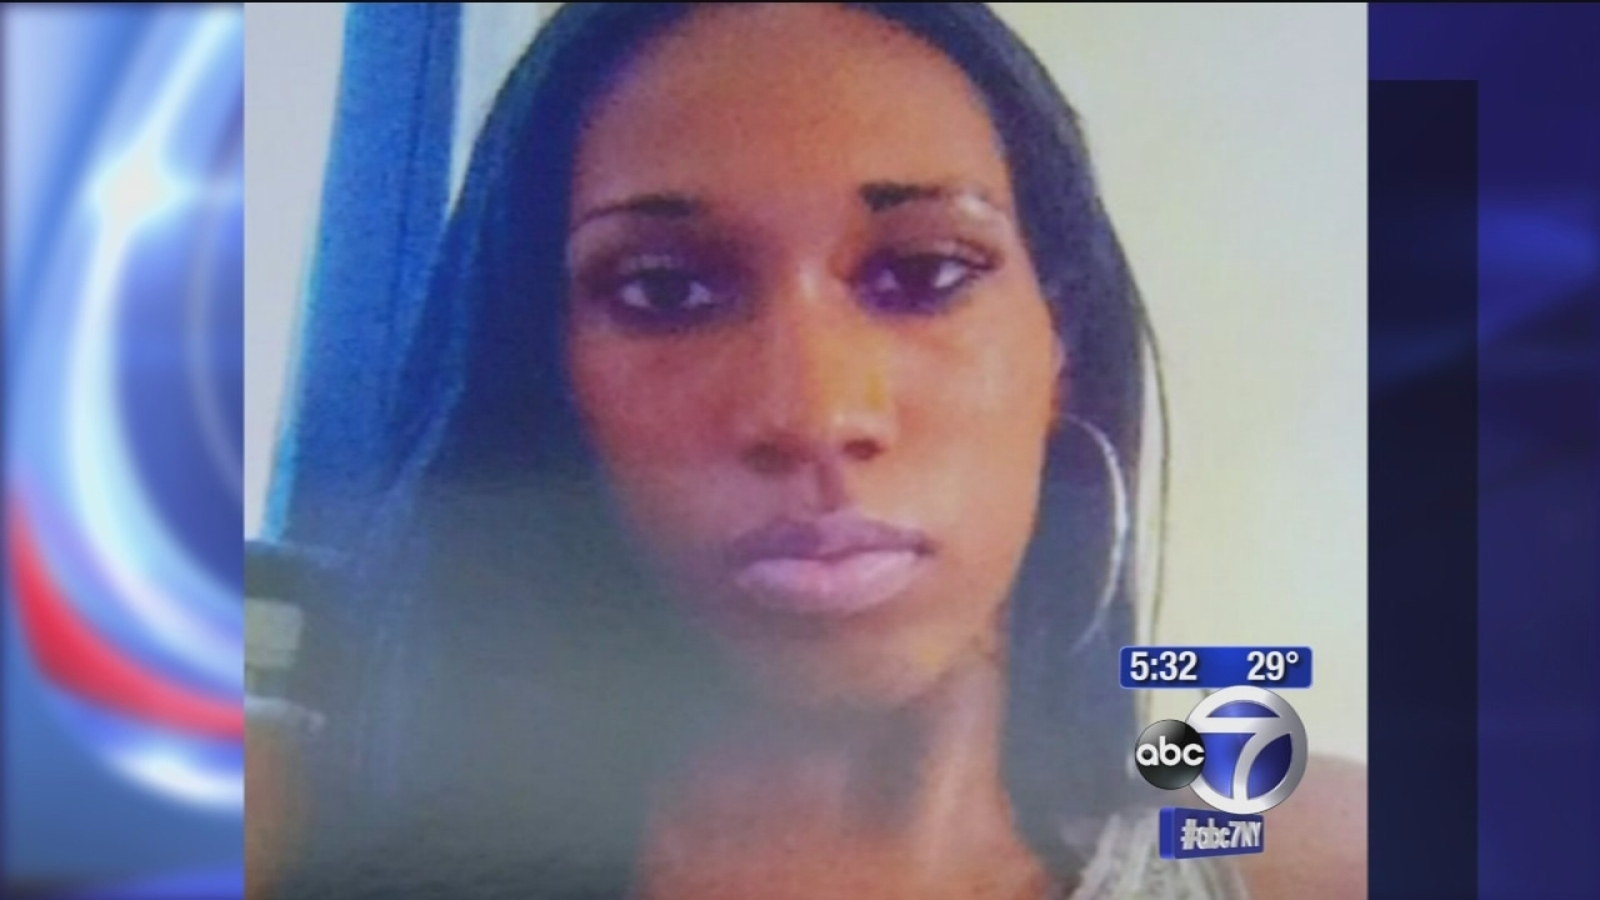 Two Black Transgender Women Killed; Man Charged in One of